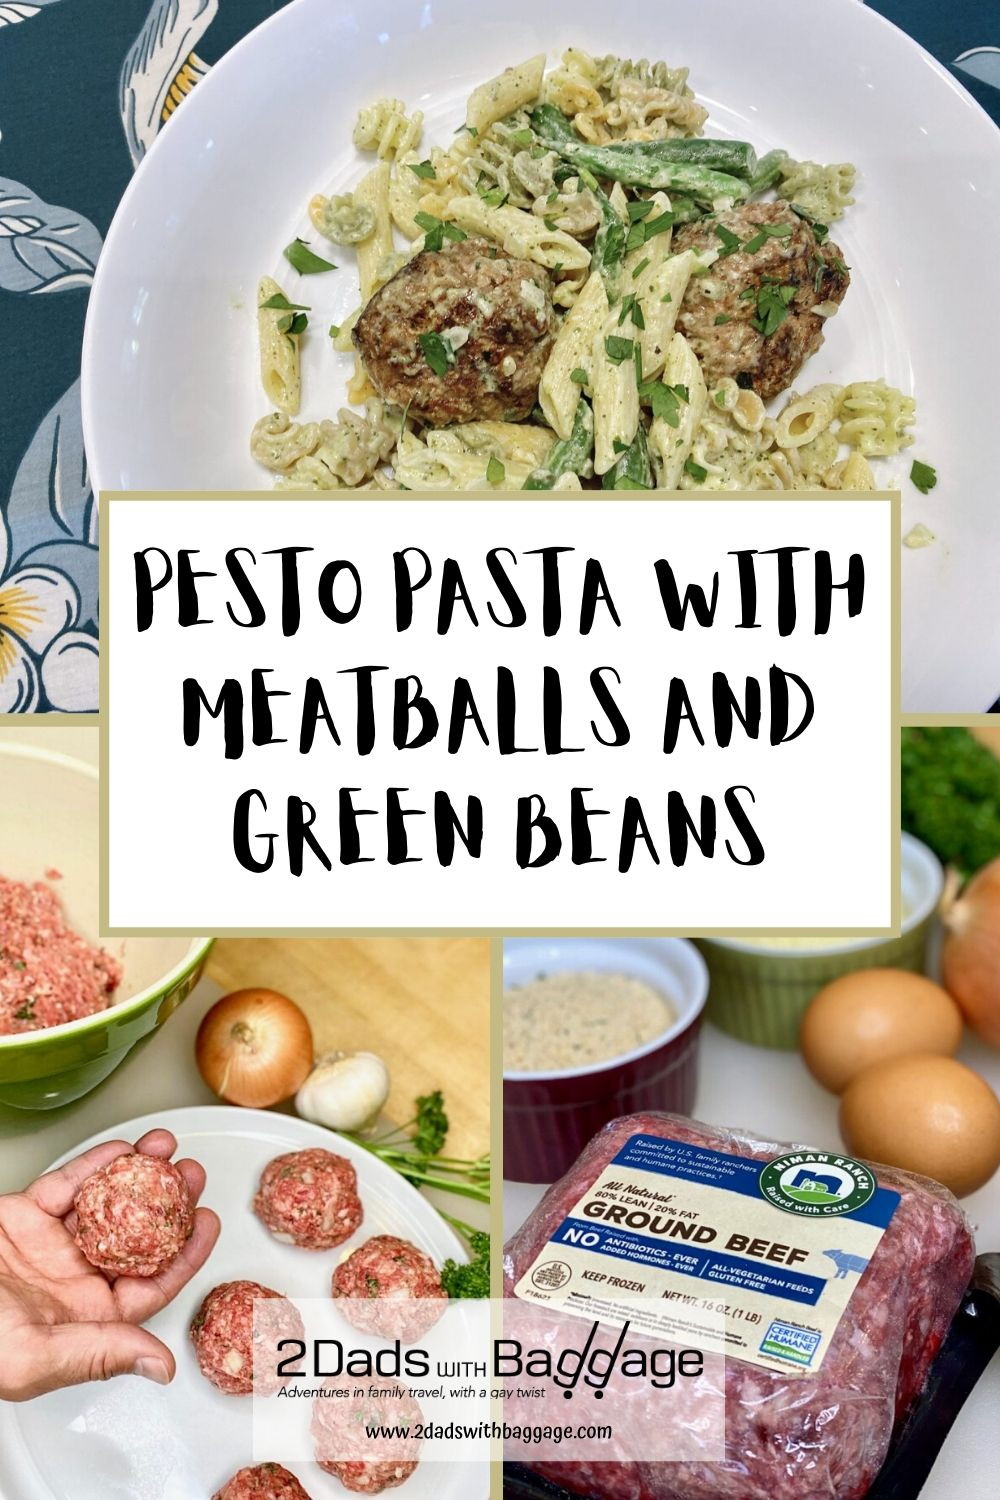 Pesto pasta with meatballs and green beans